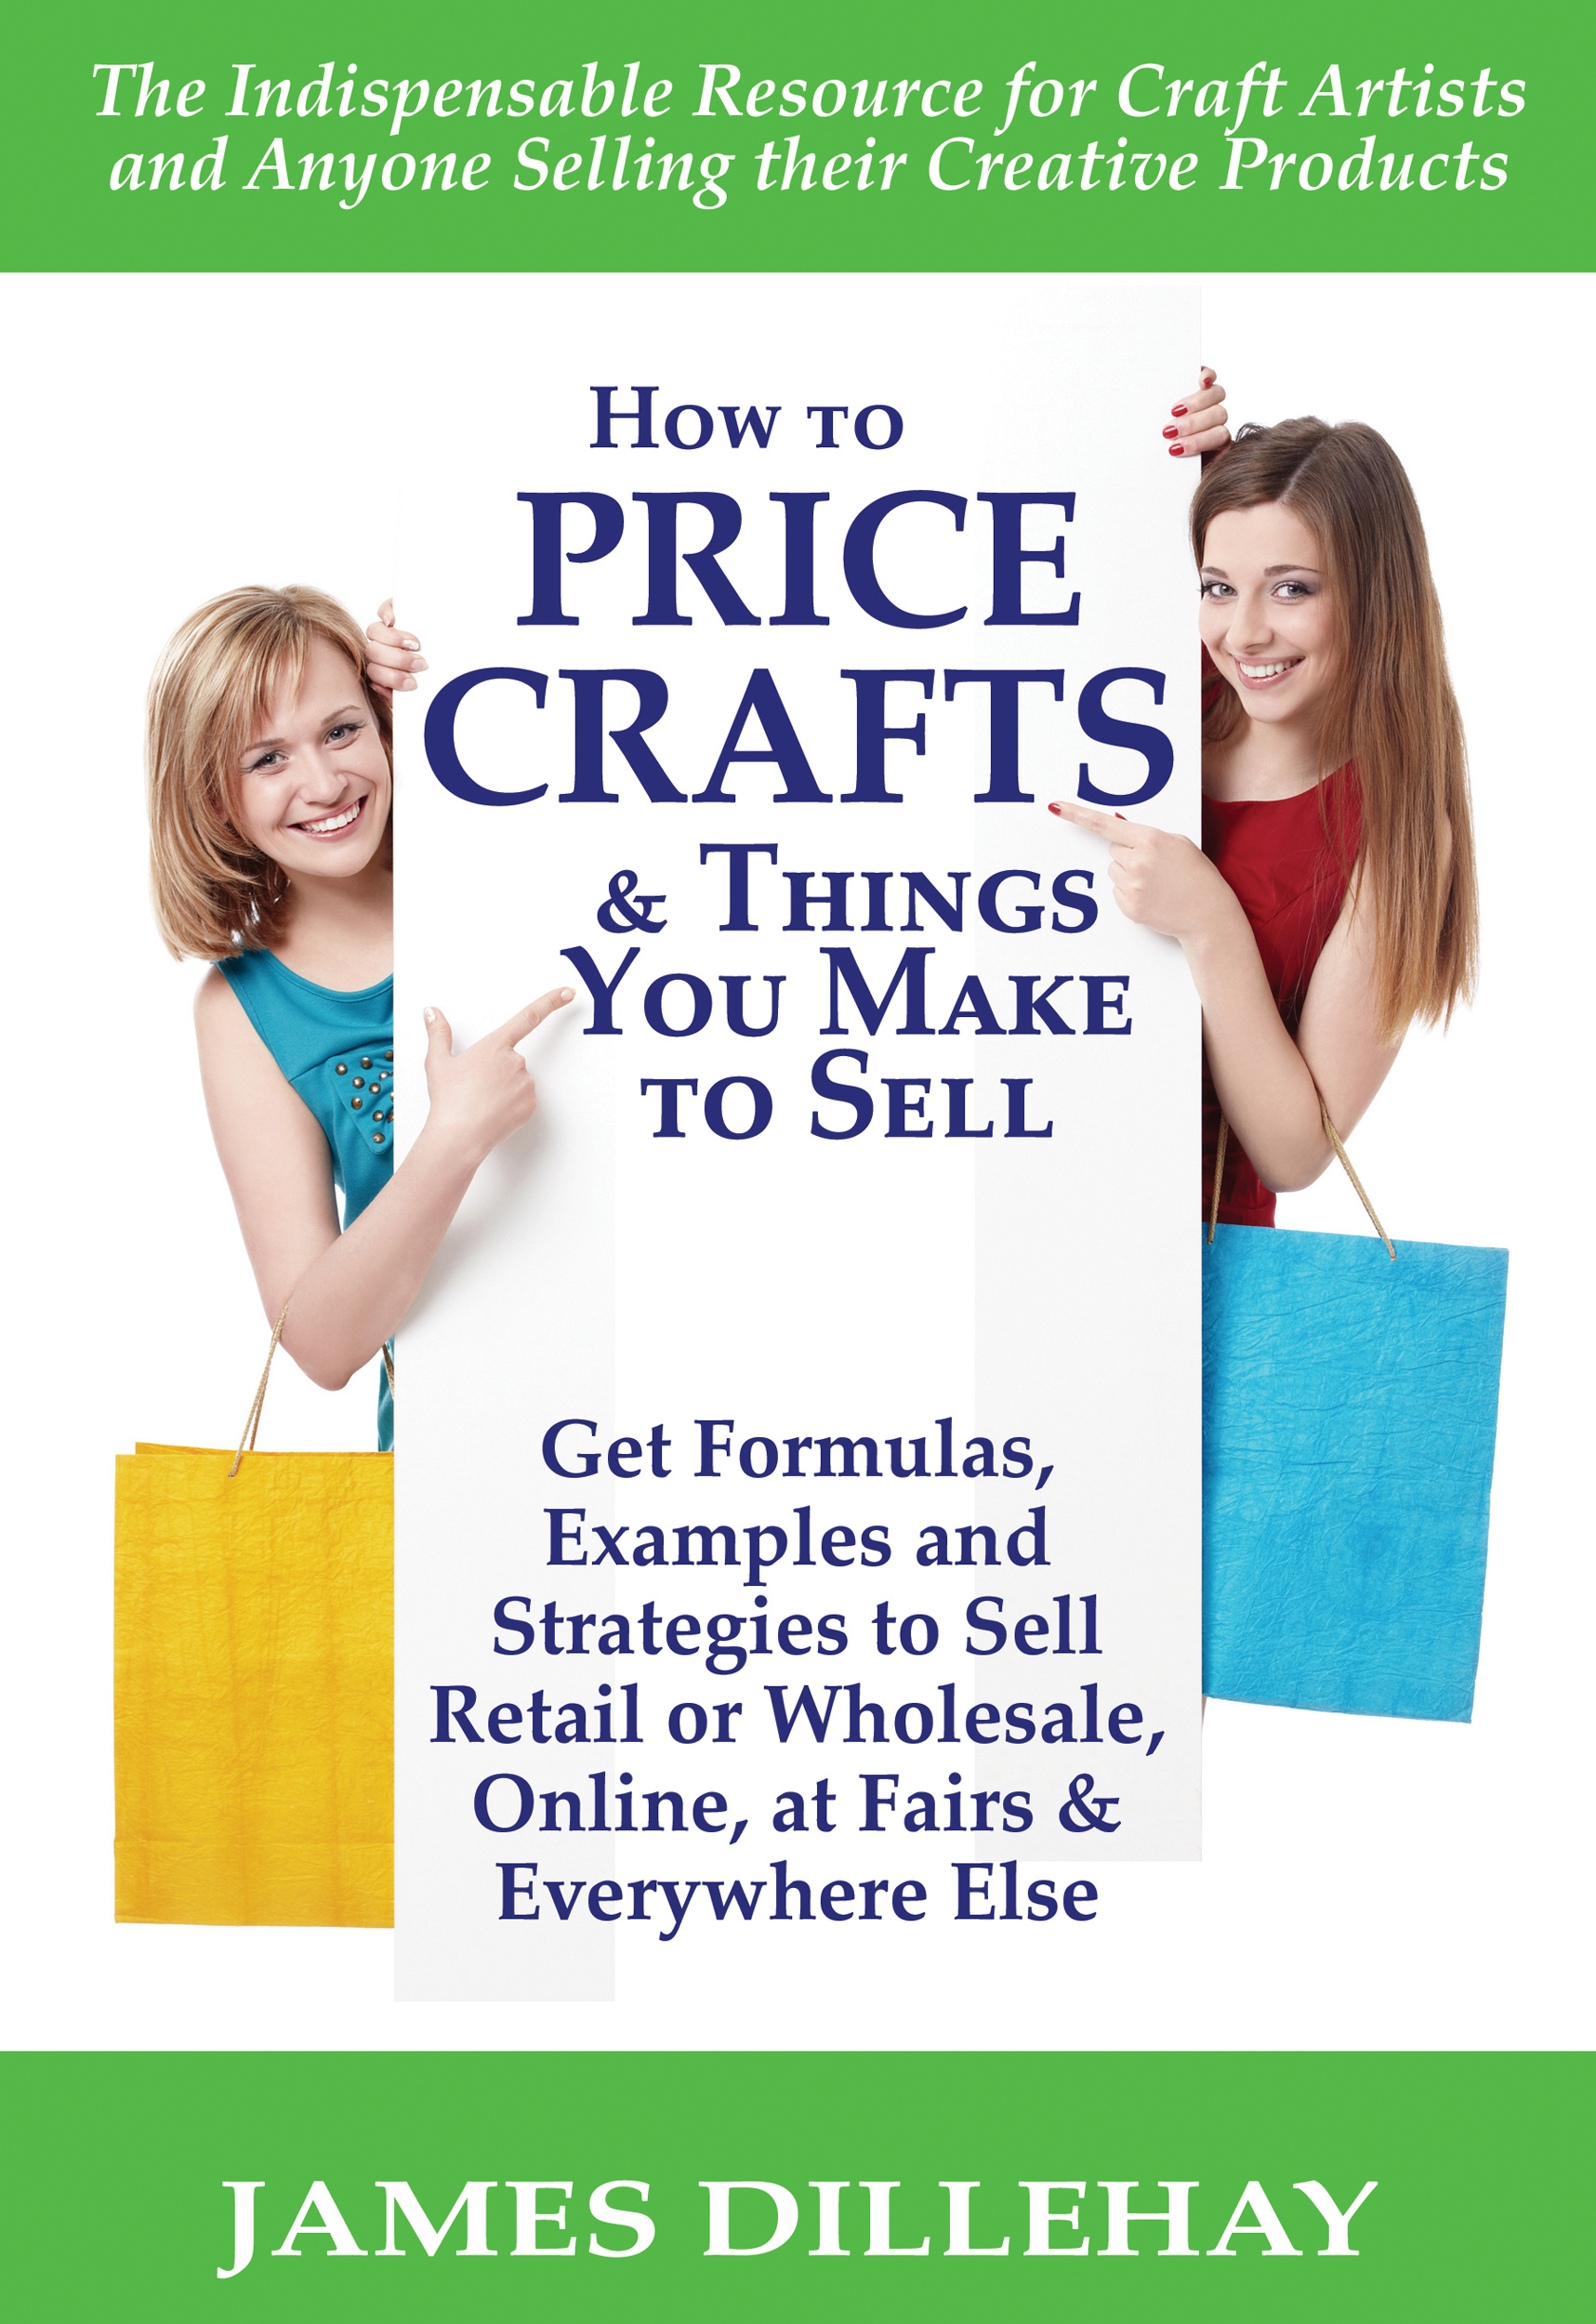 How to Price Crafts and Things You Make to Sell By: James Dillehay